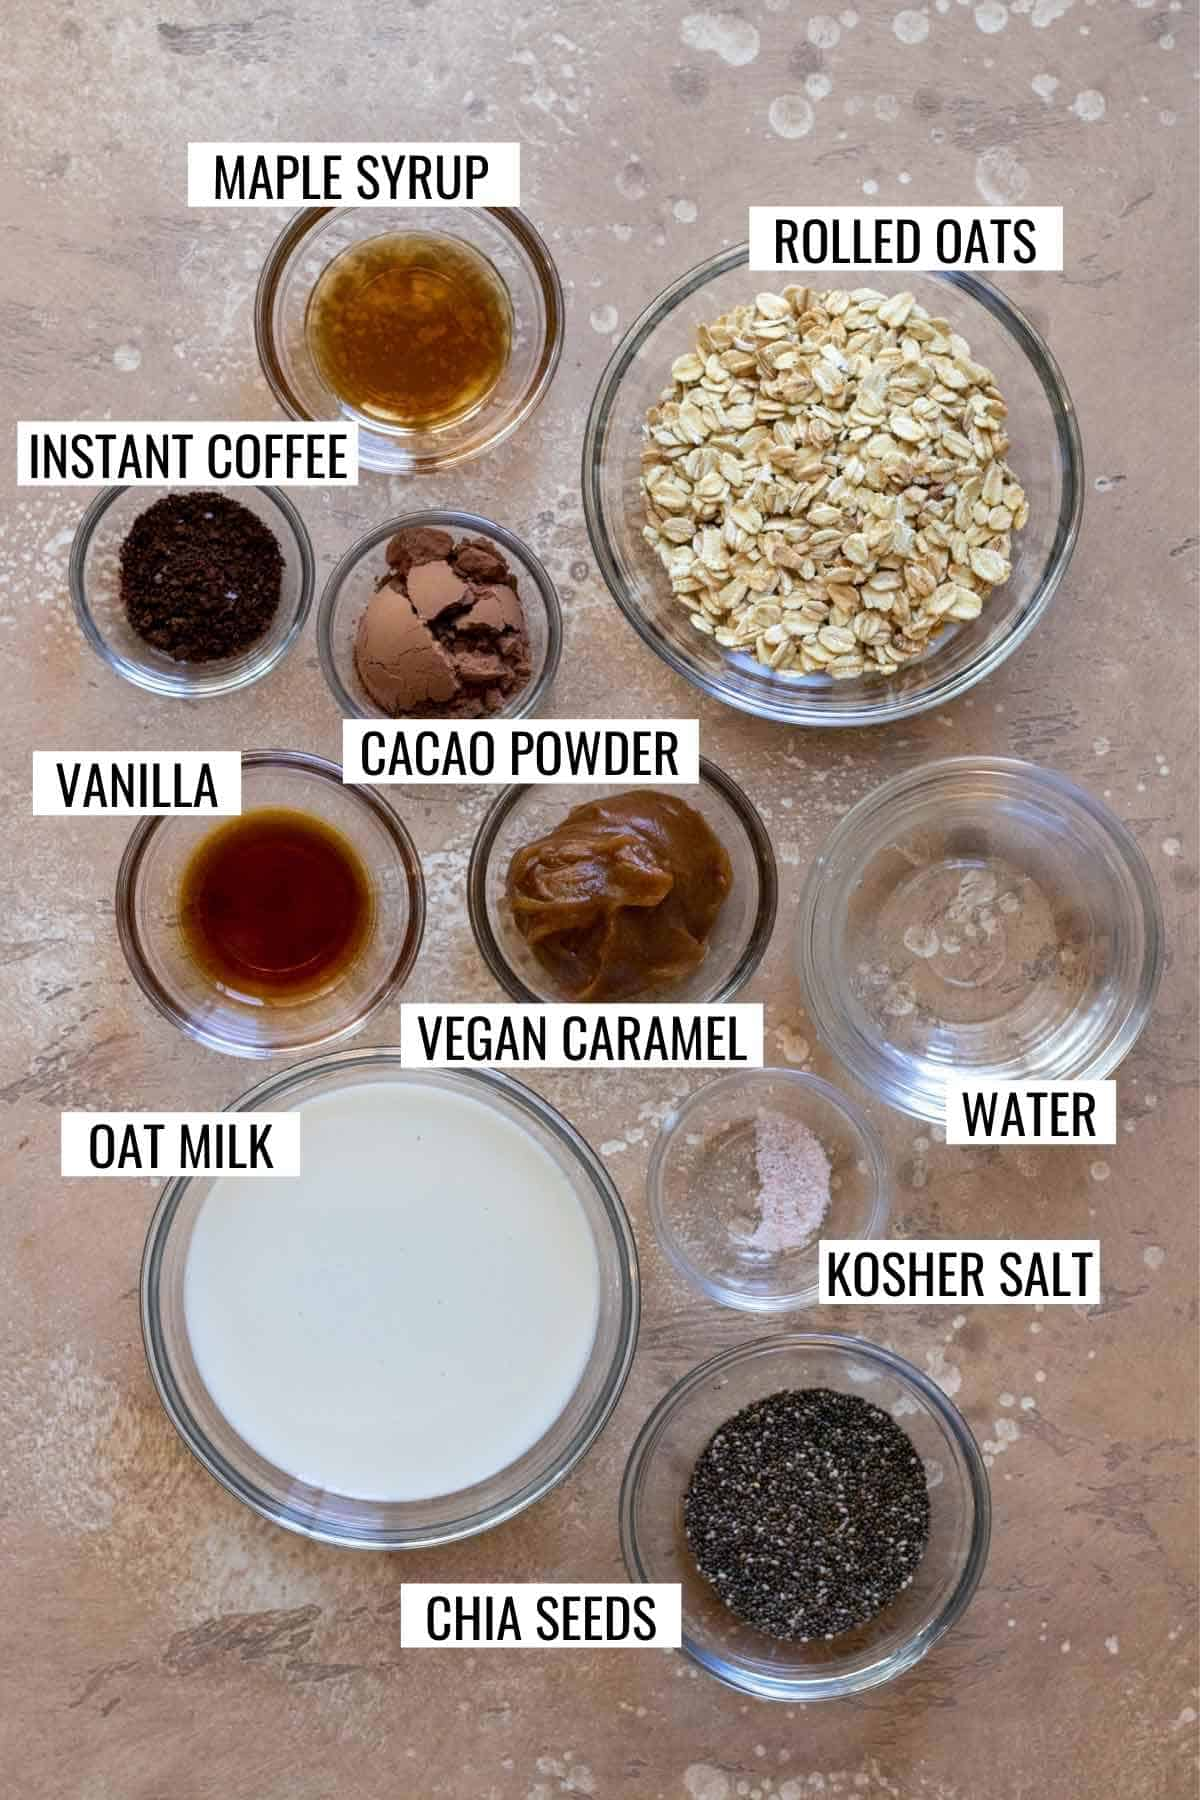 Ingredients needed to make recipe measured into individual bowls and labeled.